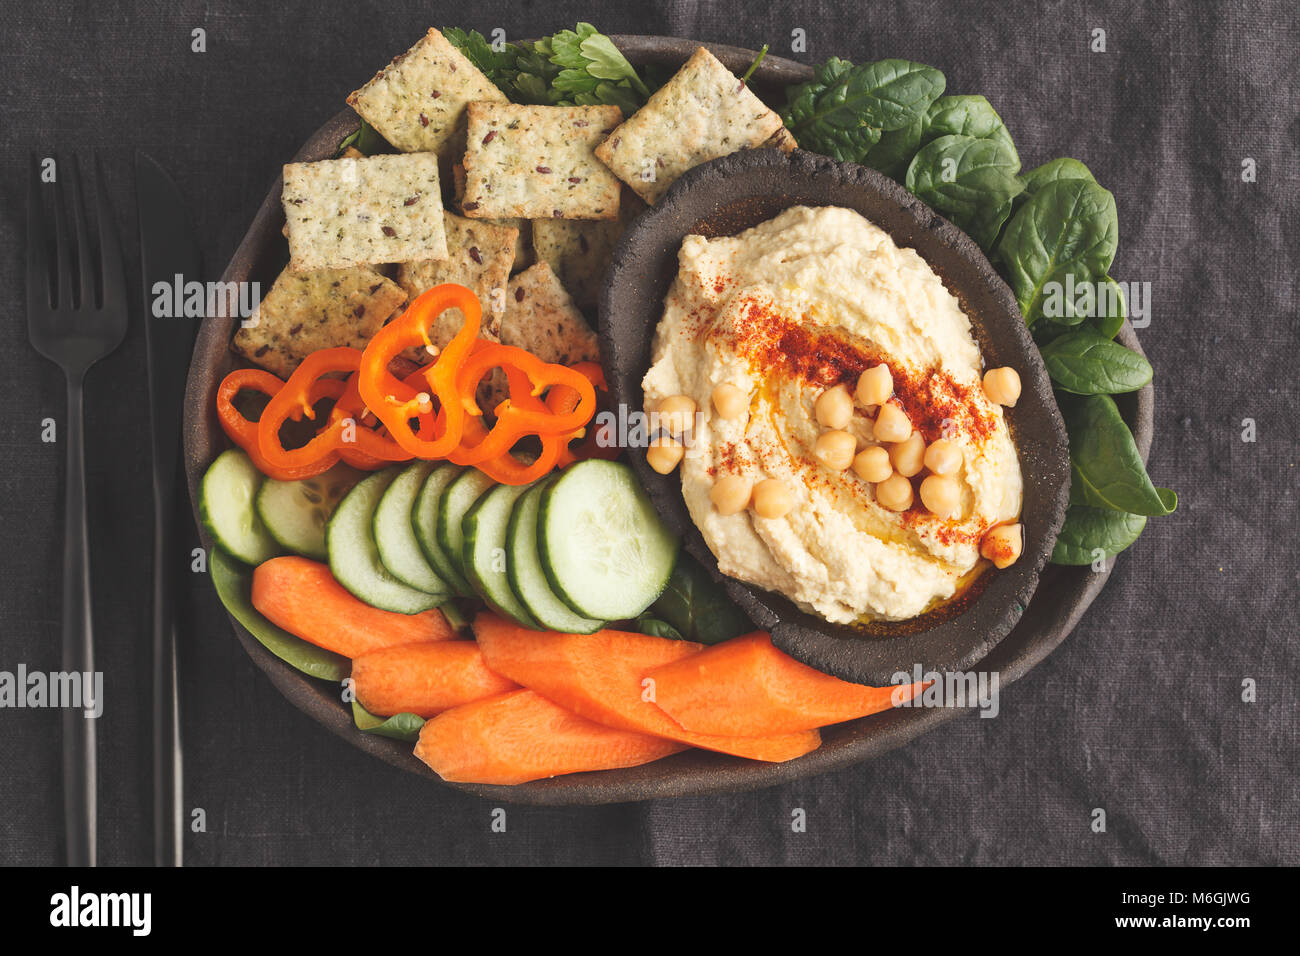 arabic arab stock photos & arabic arab stock images - page 2 - alamy